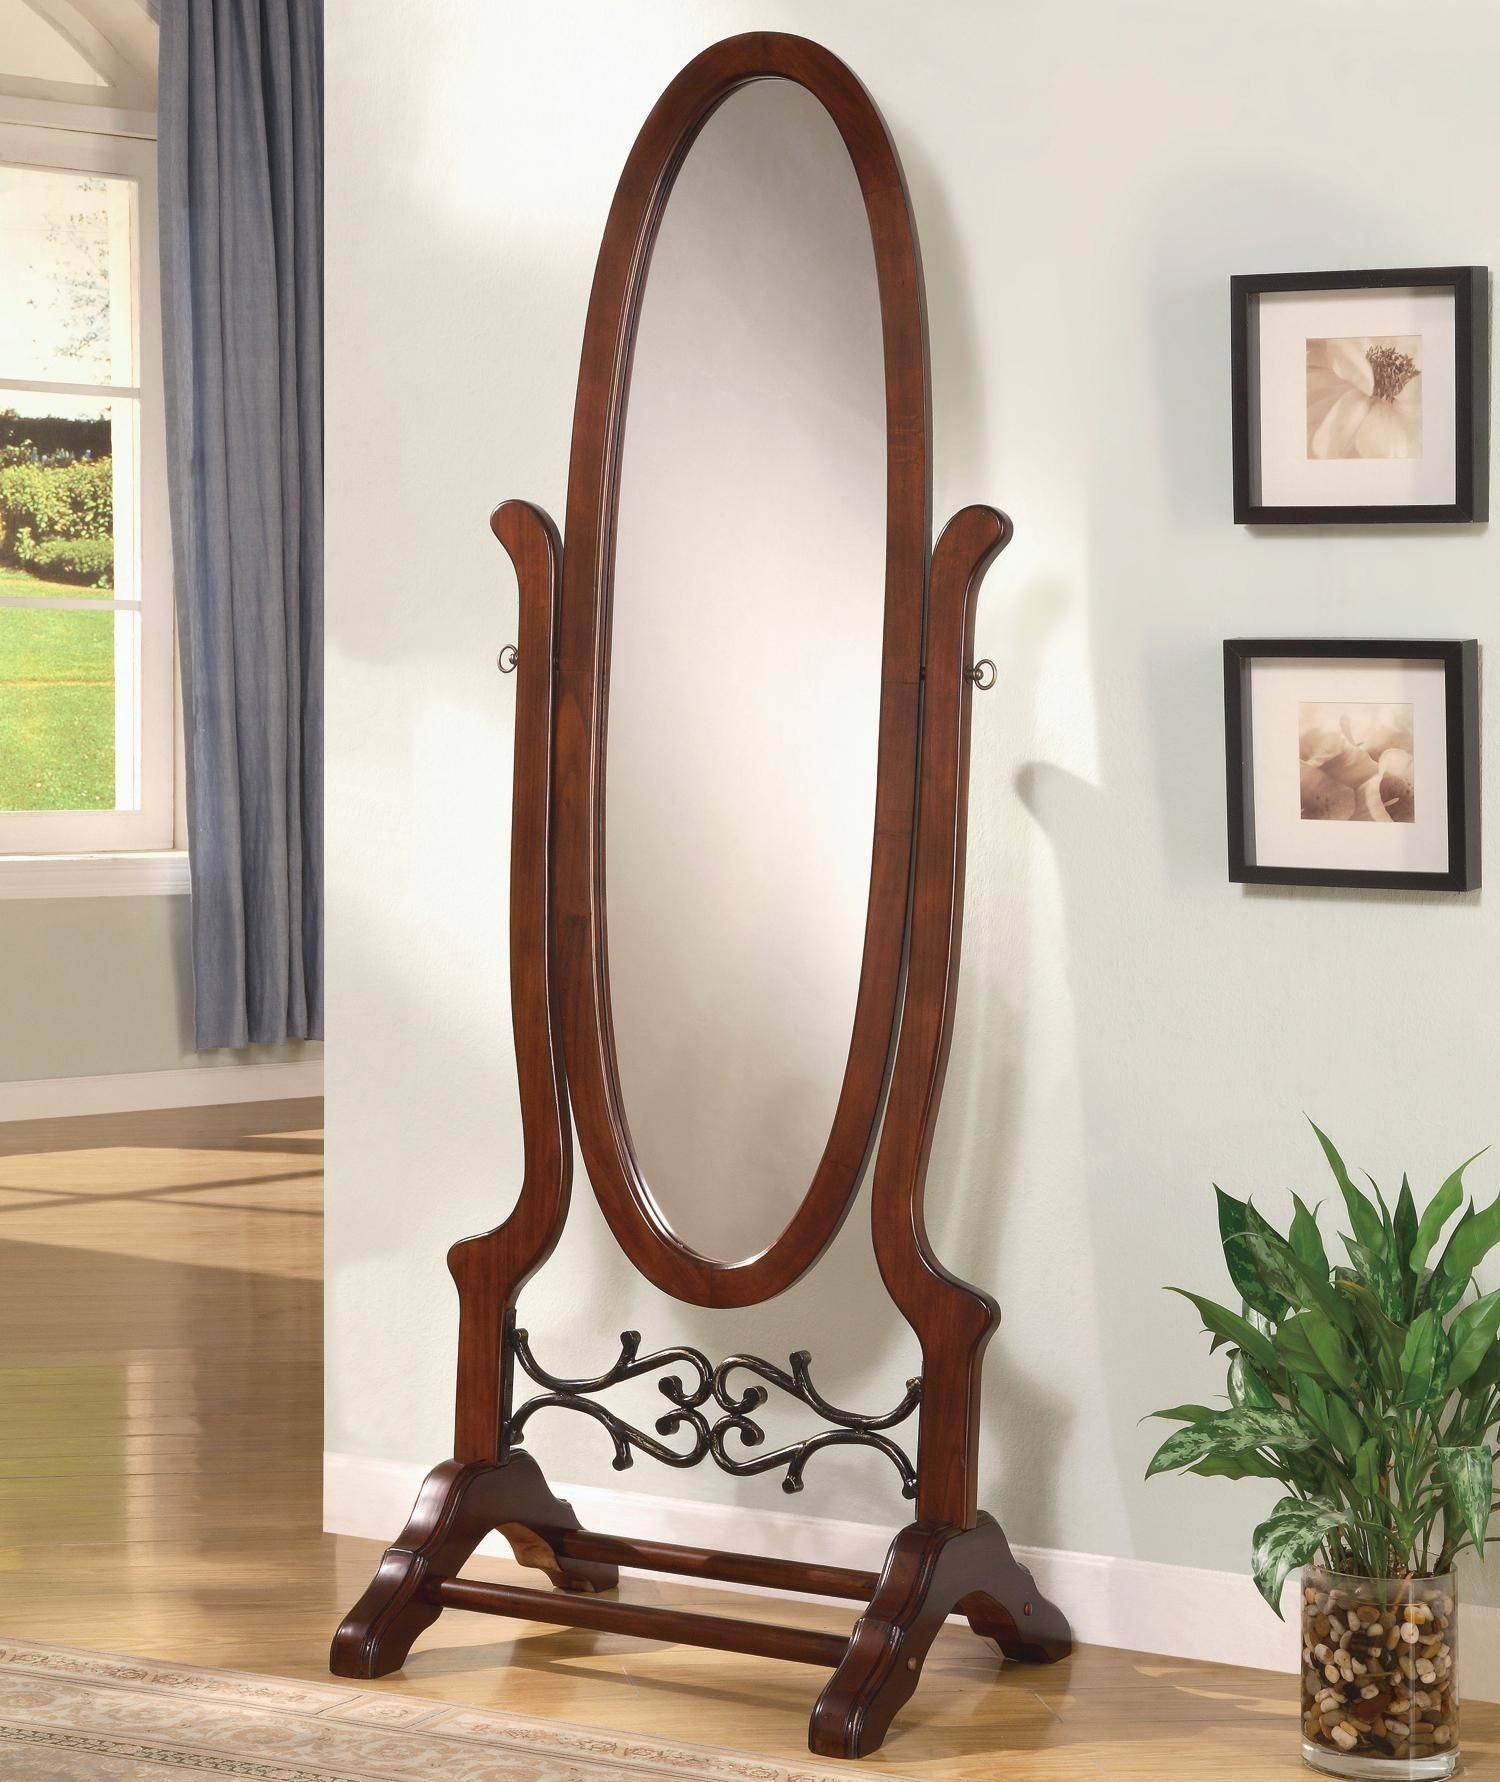 Decorating: Amusing Cheval Mirror For Home Furniture Ideas — Mtyp intended for Oval Freestanding Mirrors (Image 9 of 25)